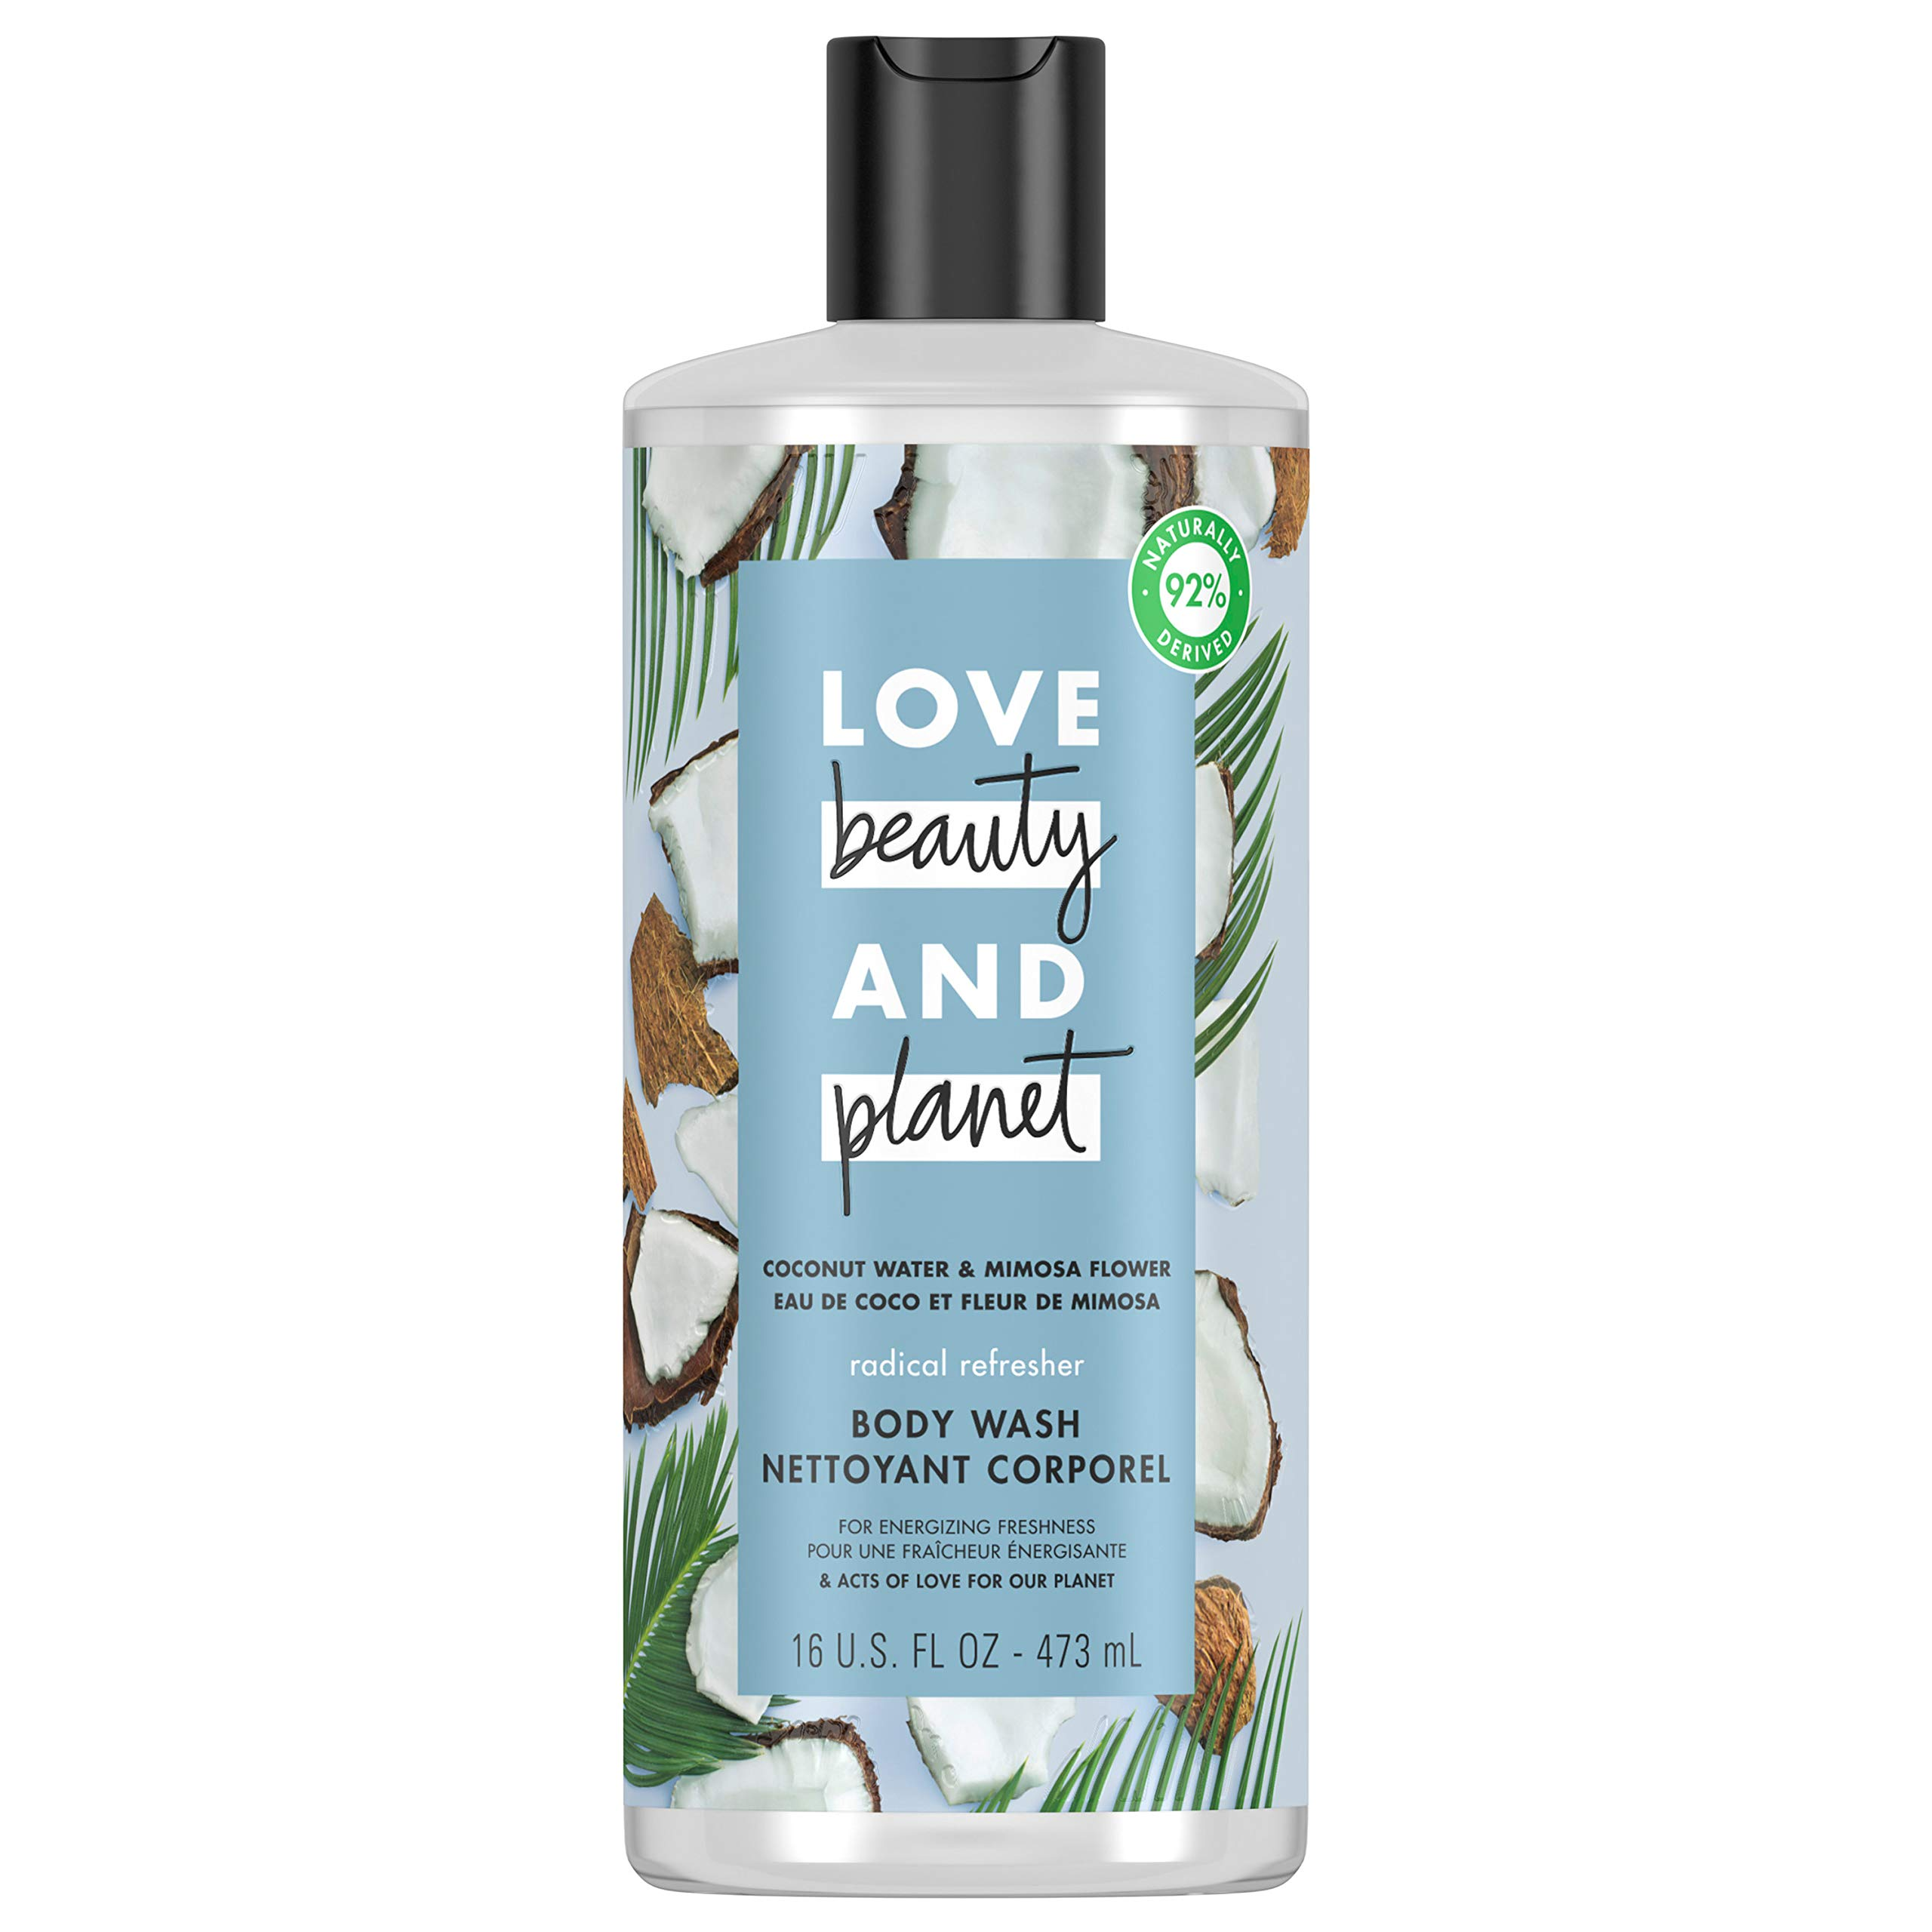 Love Beauty And Planet Radical Refresher Body Wash for Energizing Freshness Coconut Water & Mimosa Flower Hydrating Bodywash 16 oz